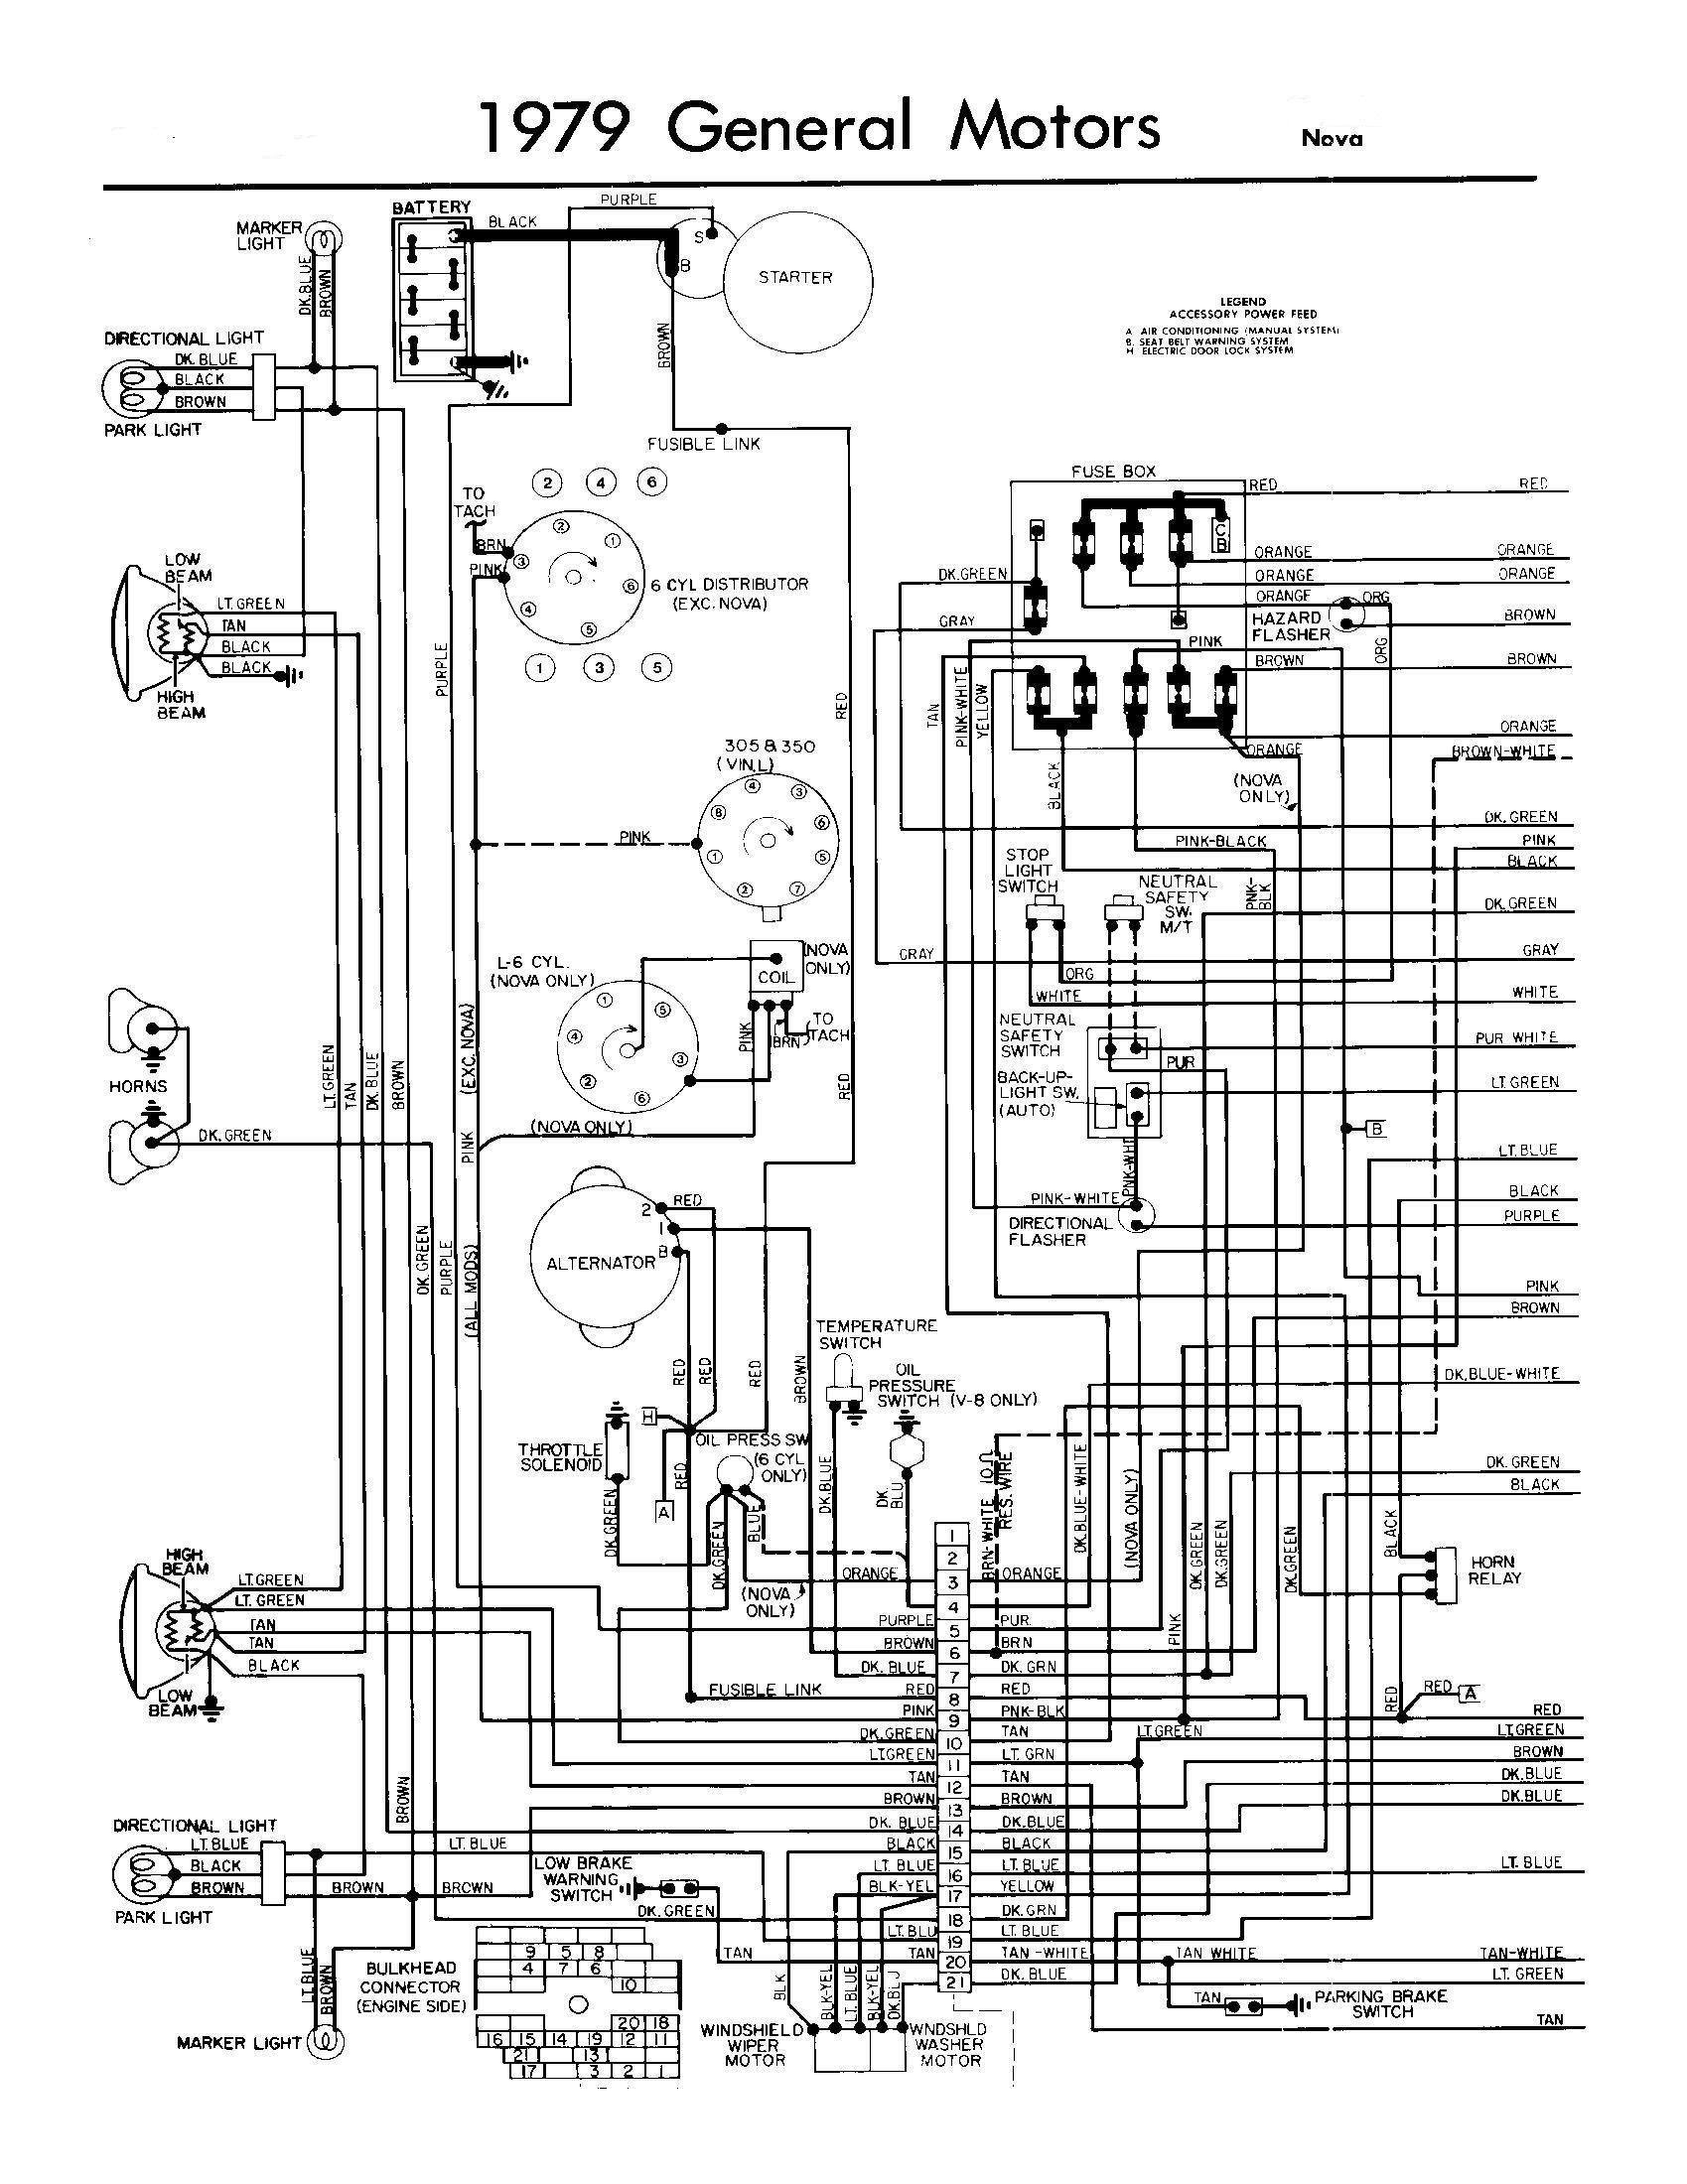 Easy Wiring Harness For 1979 Chevy C10 Truck - Wiring Diagrams Hubs - 1979 Chevy Truck Wiring Diagram